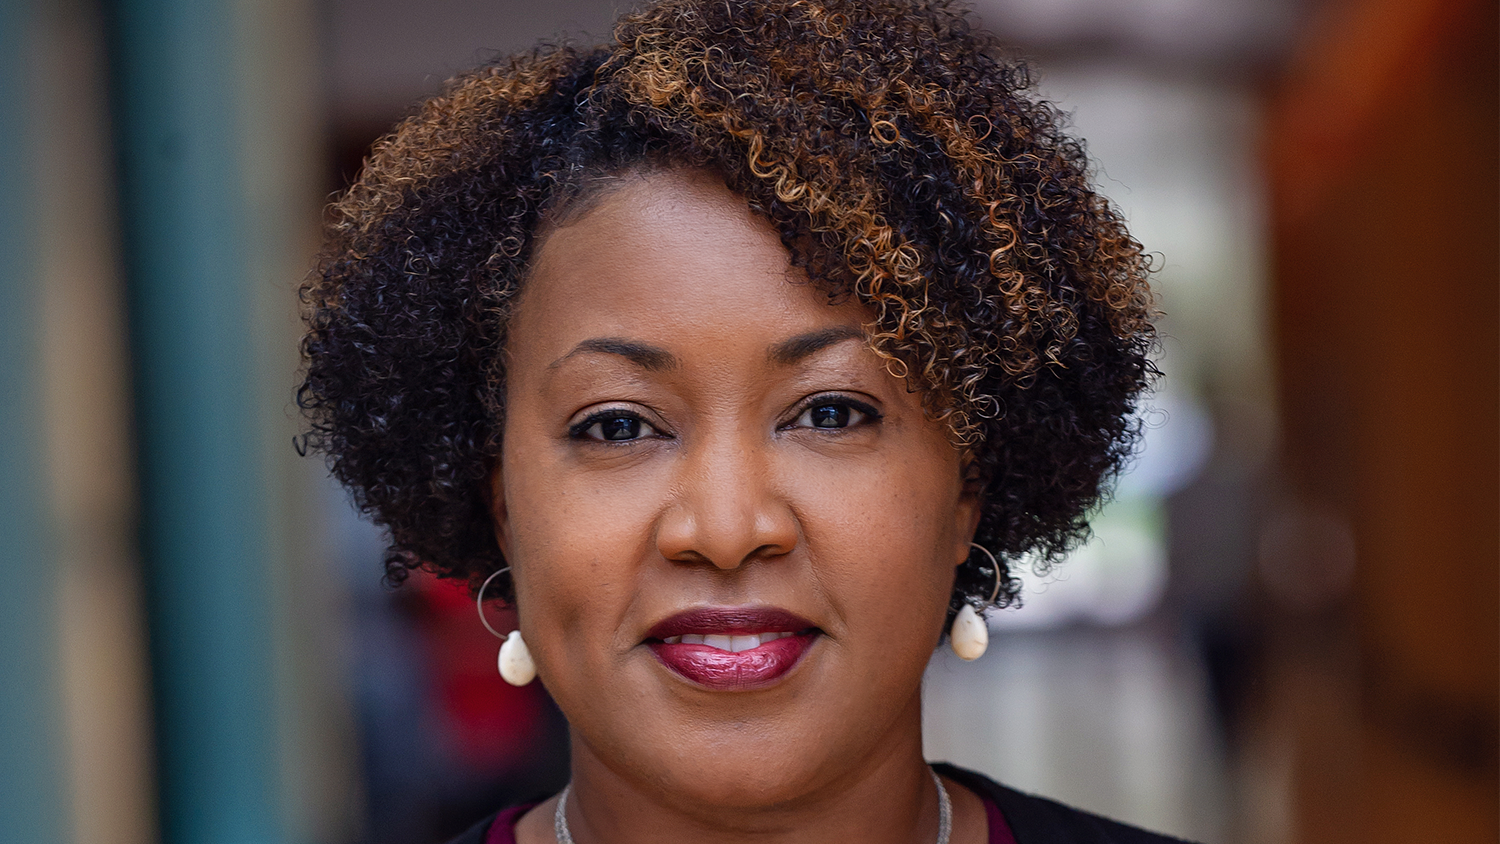 NCState College of Education Assistant Professor Chandra Alston